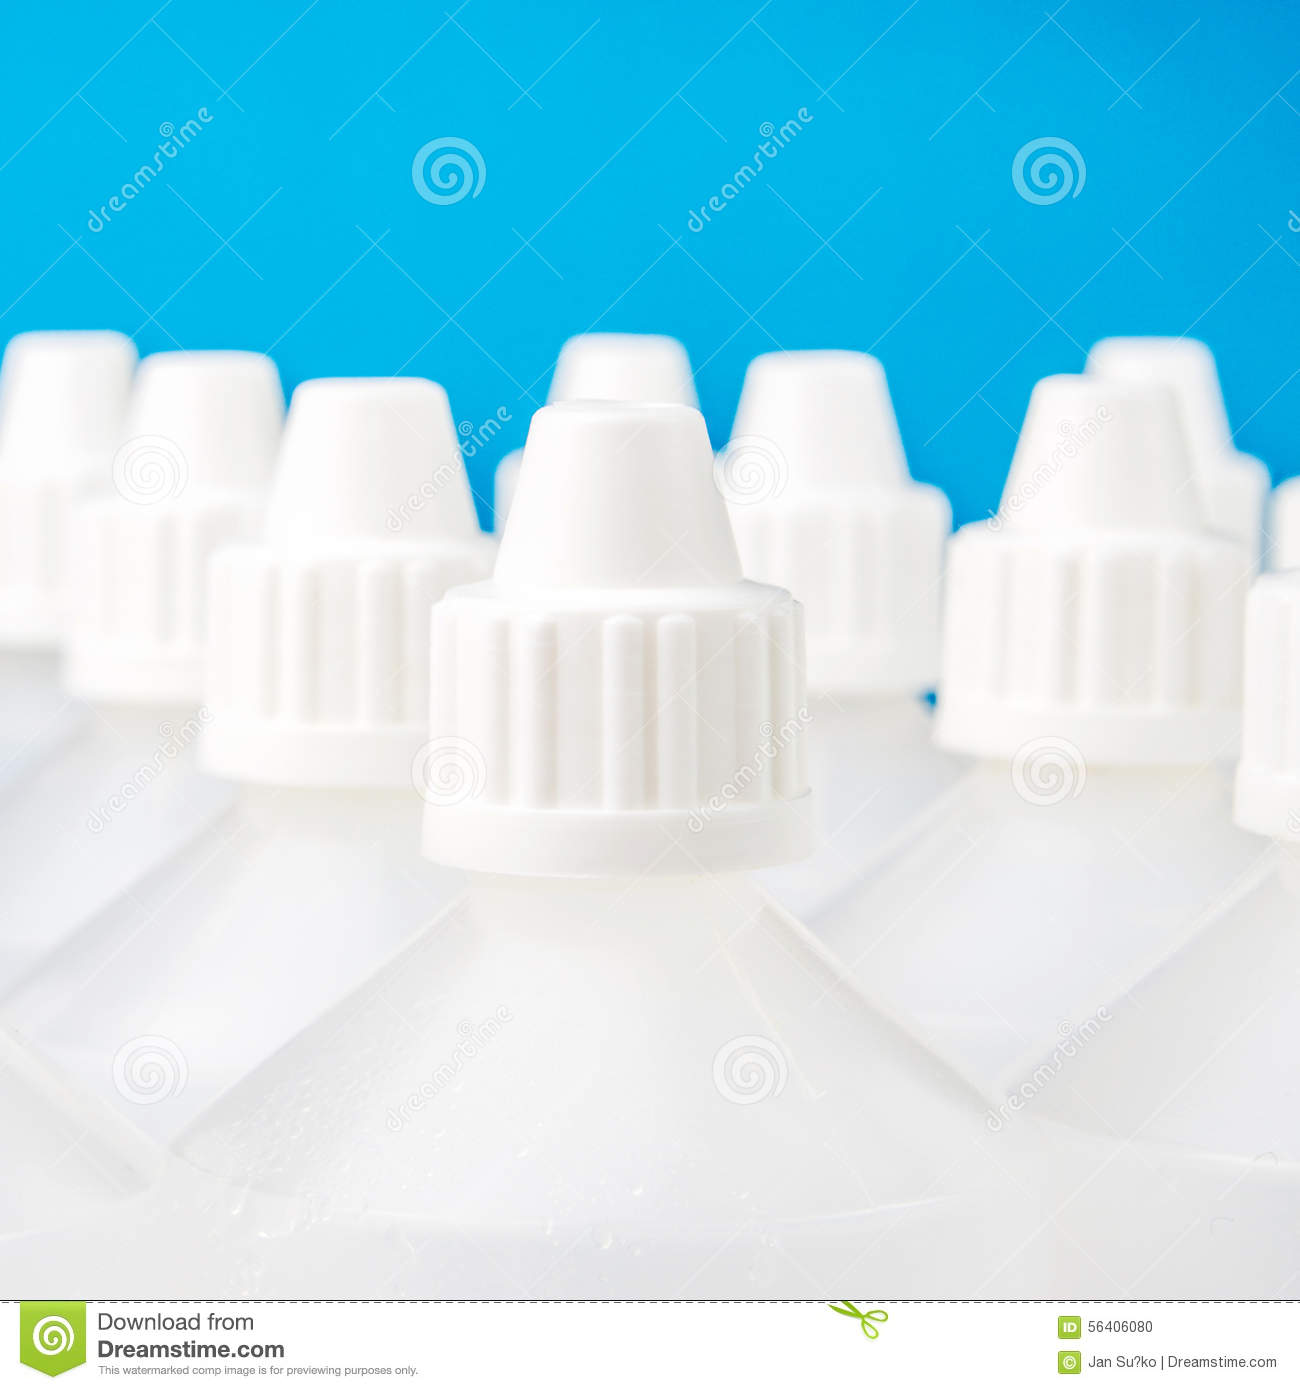 ... one specific focused bottle on blue and blurred bottles background